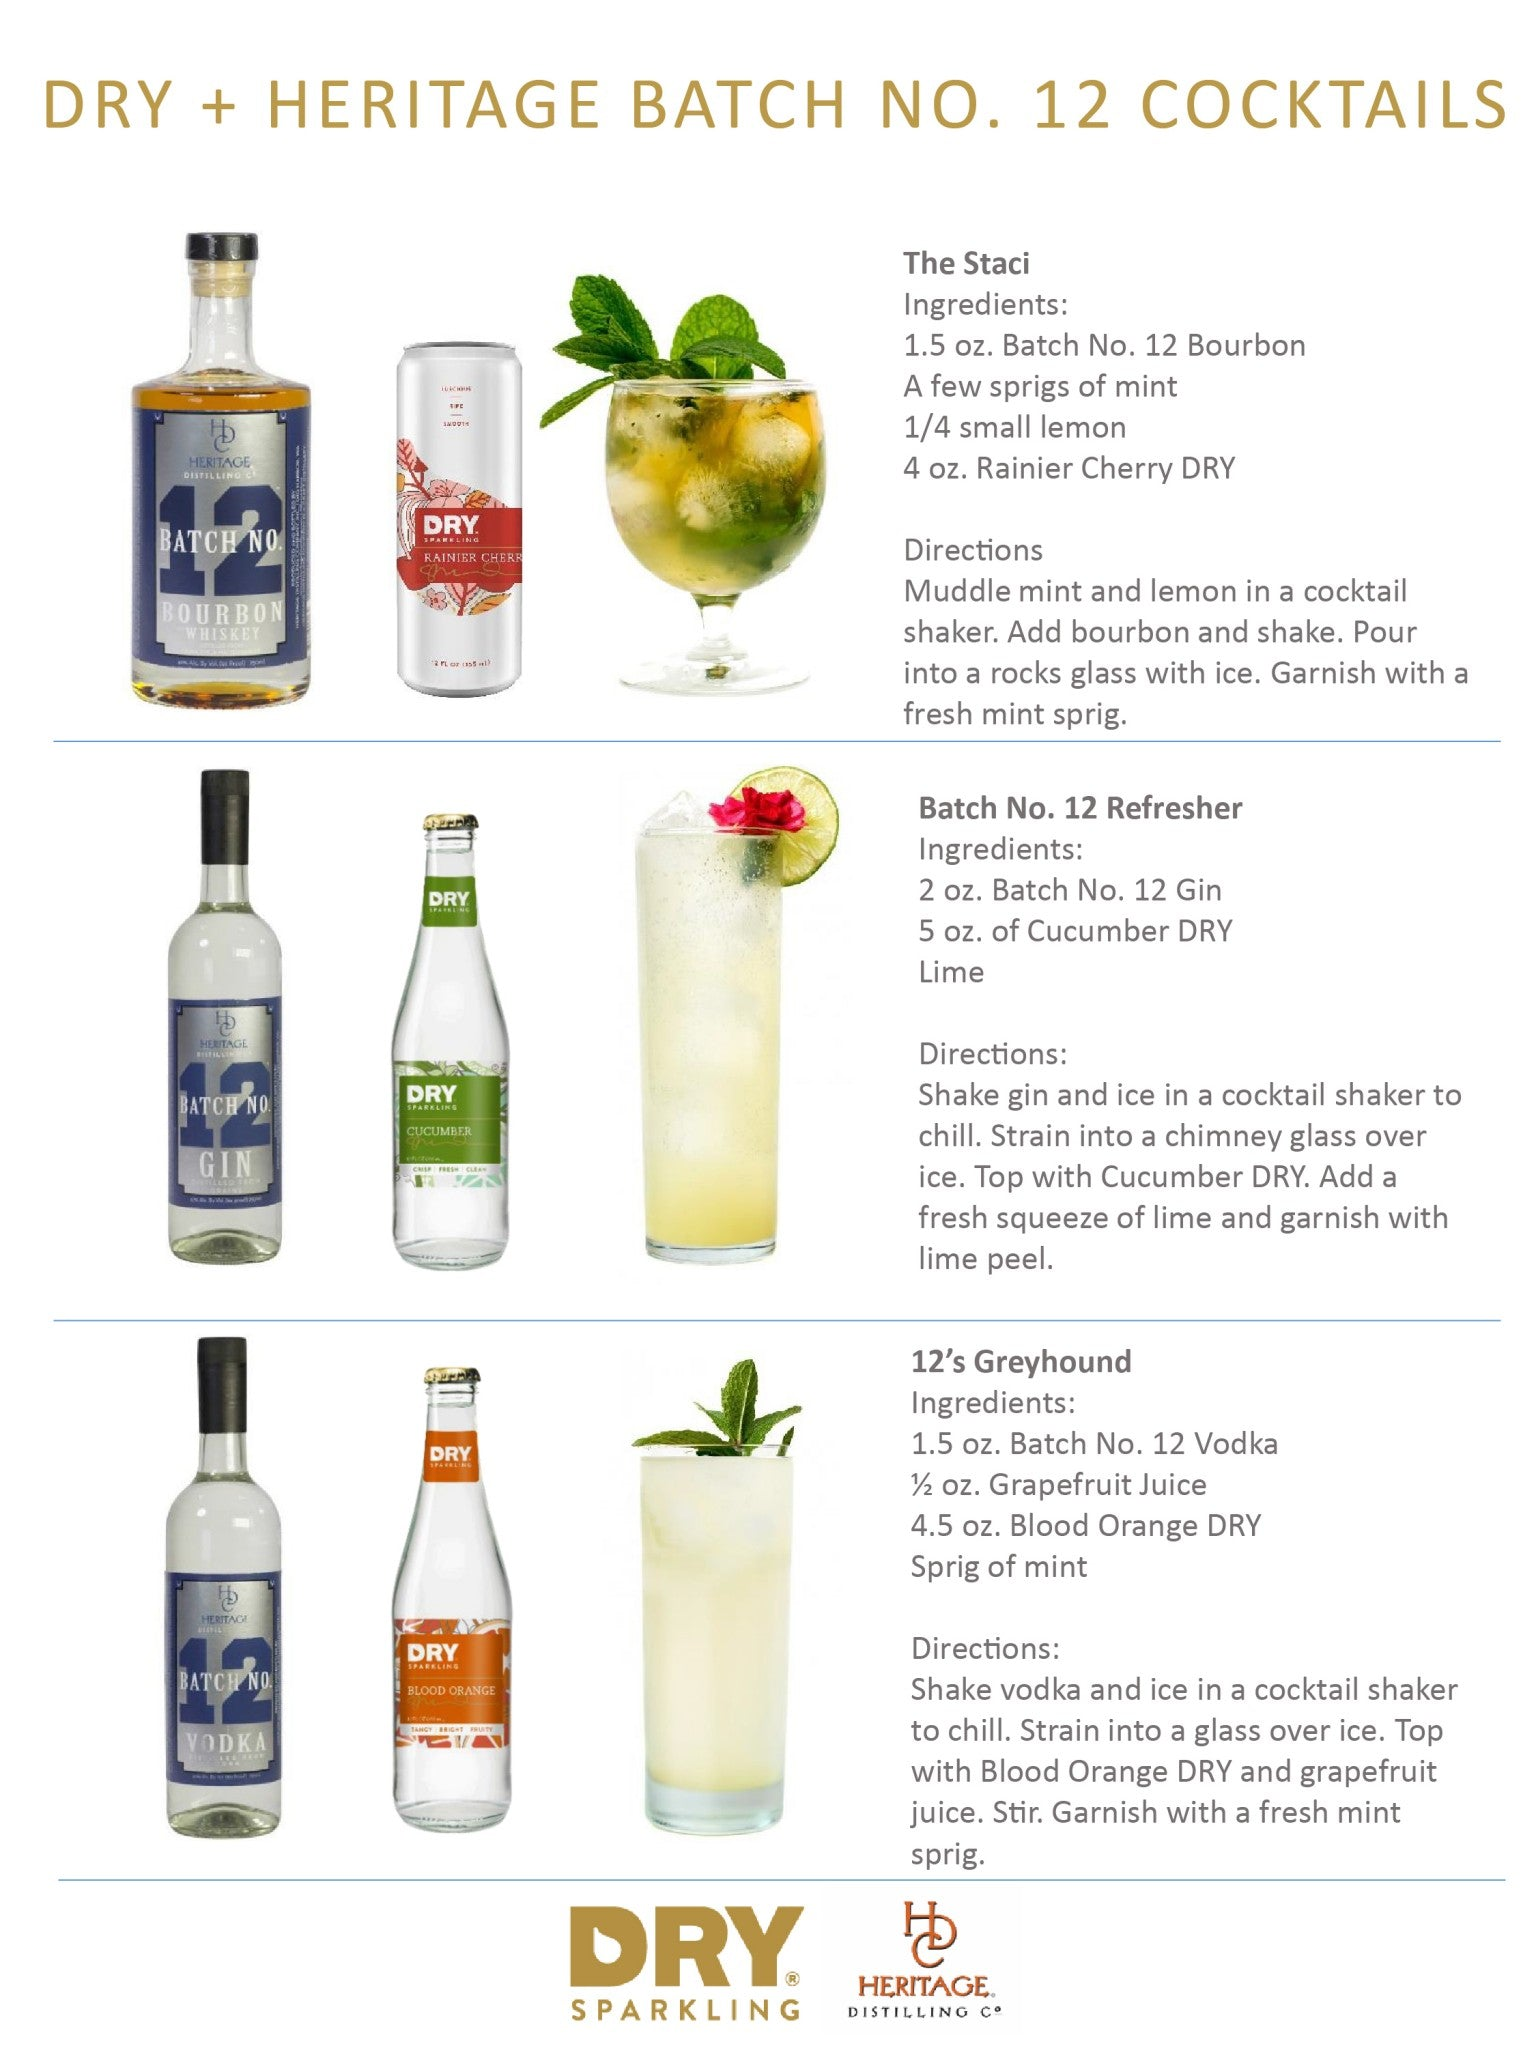 heritage_dry_cocktails-1